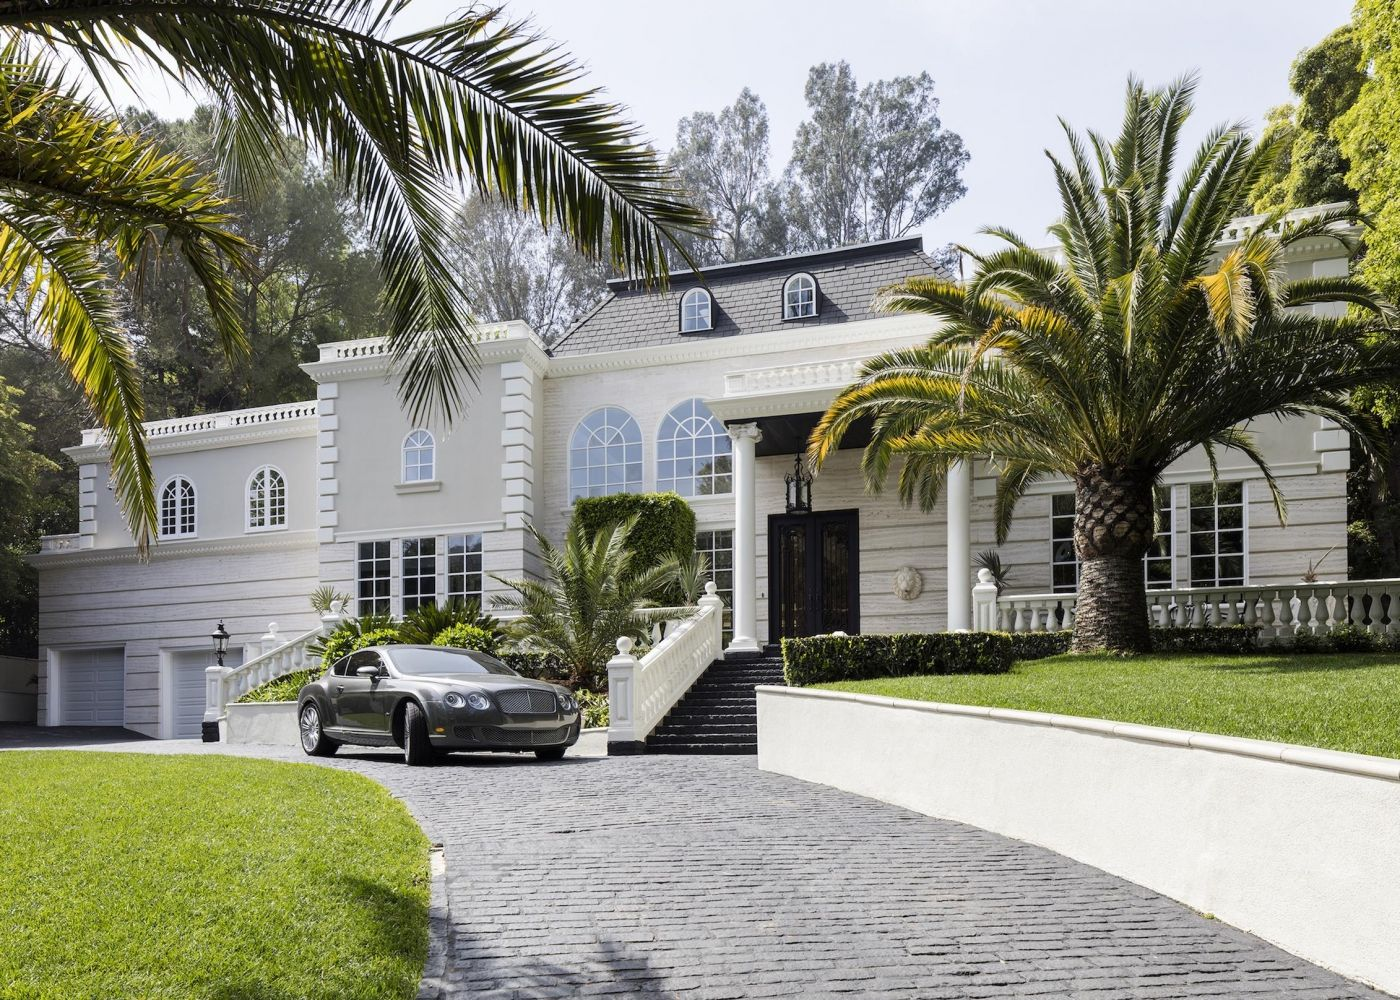 1485 Stone Canyon Road Los Angeles, CA 90077 Located in the \